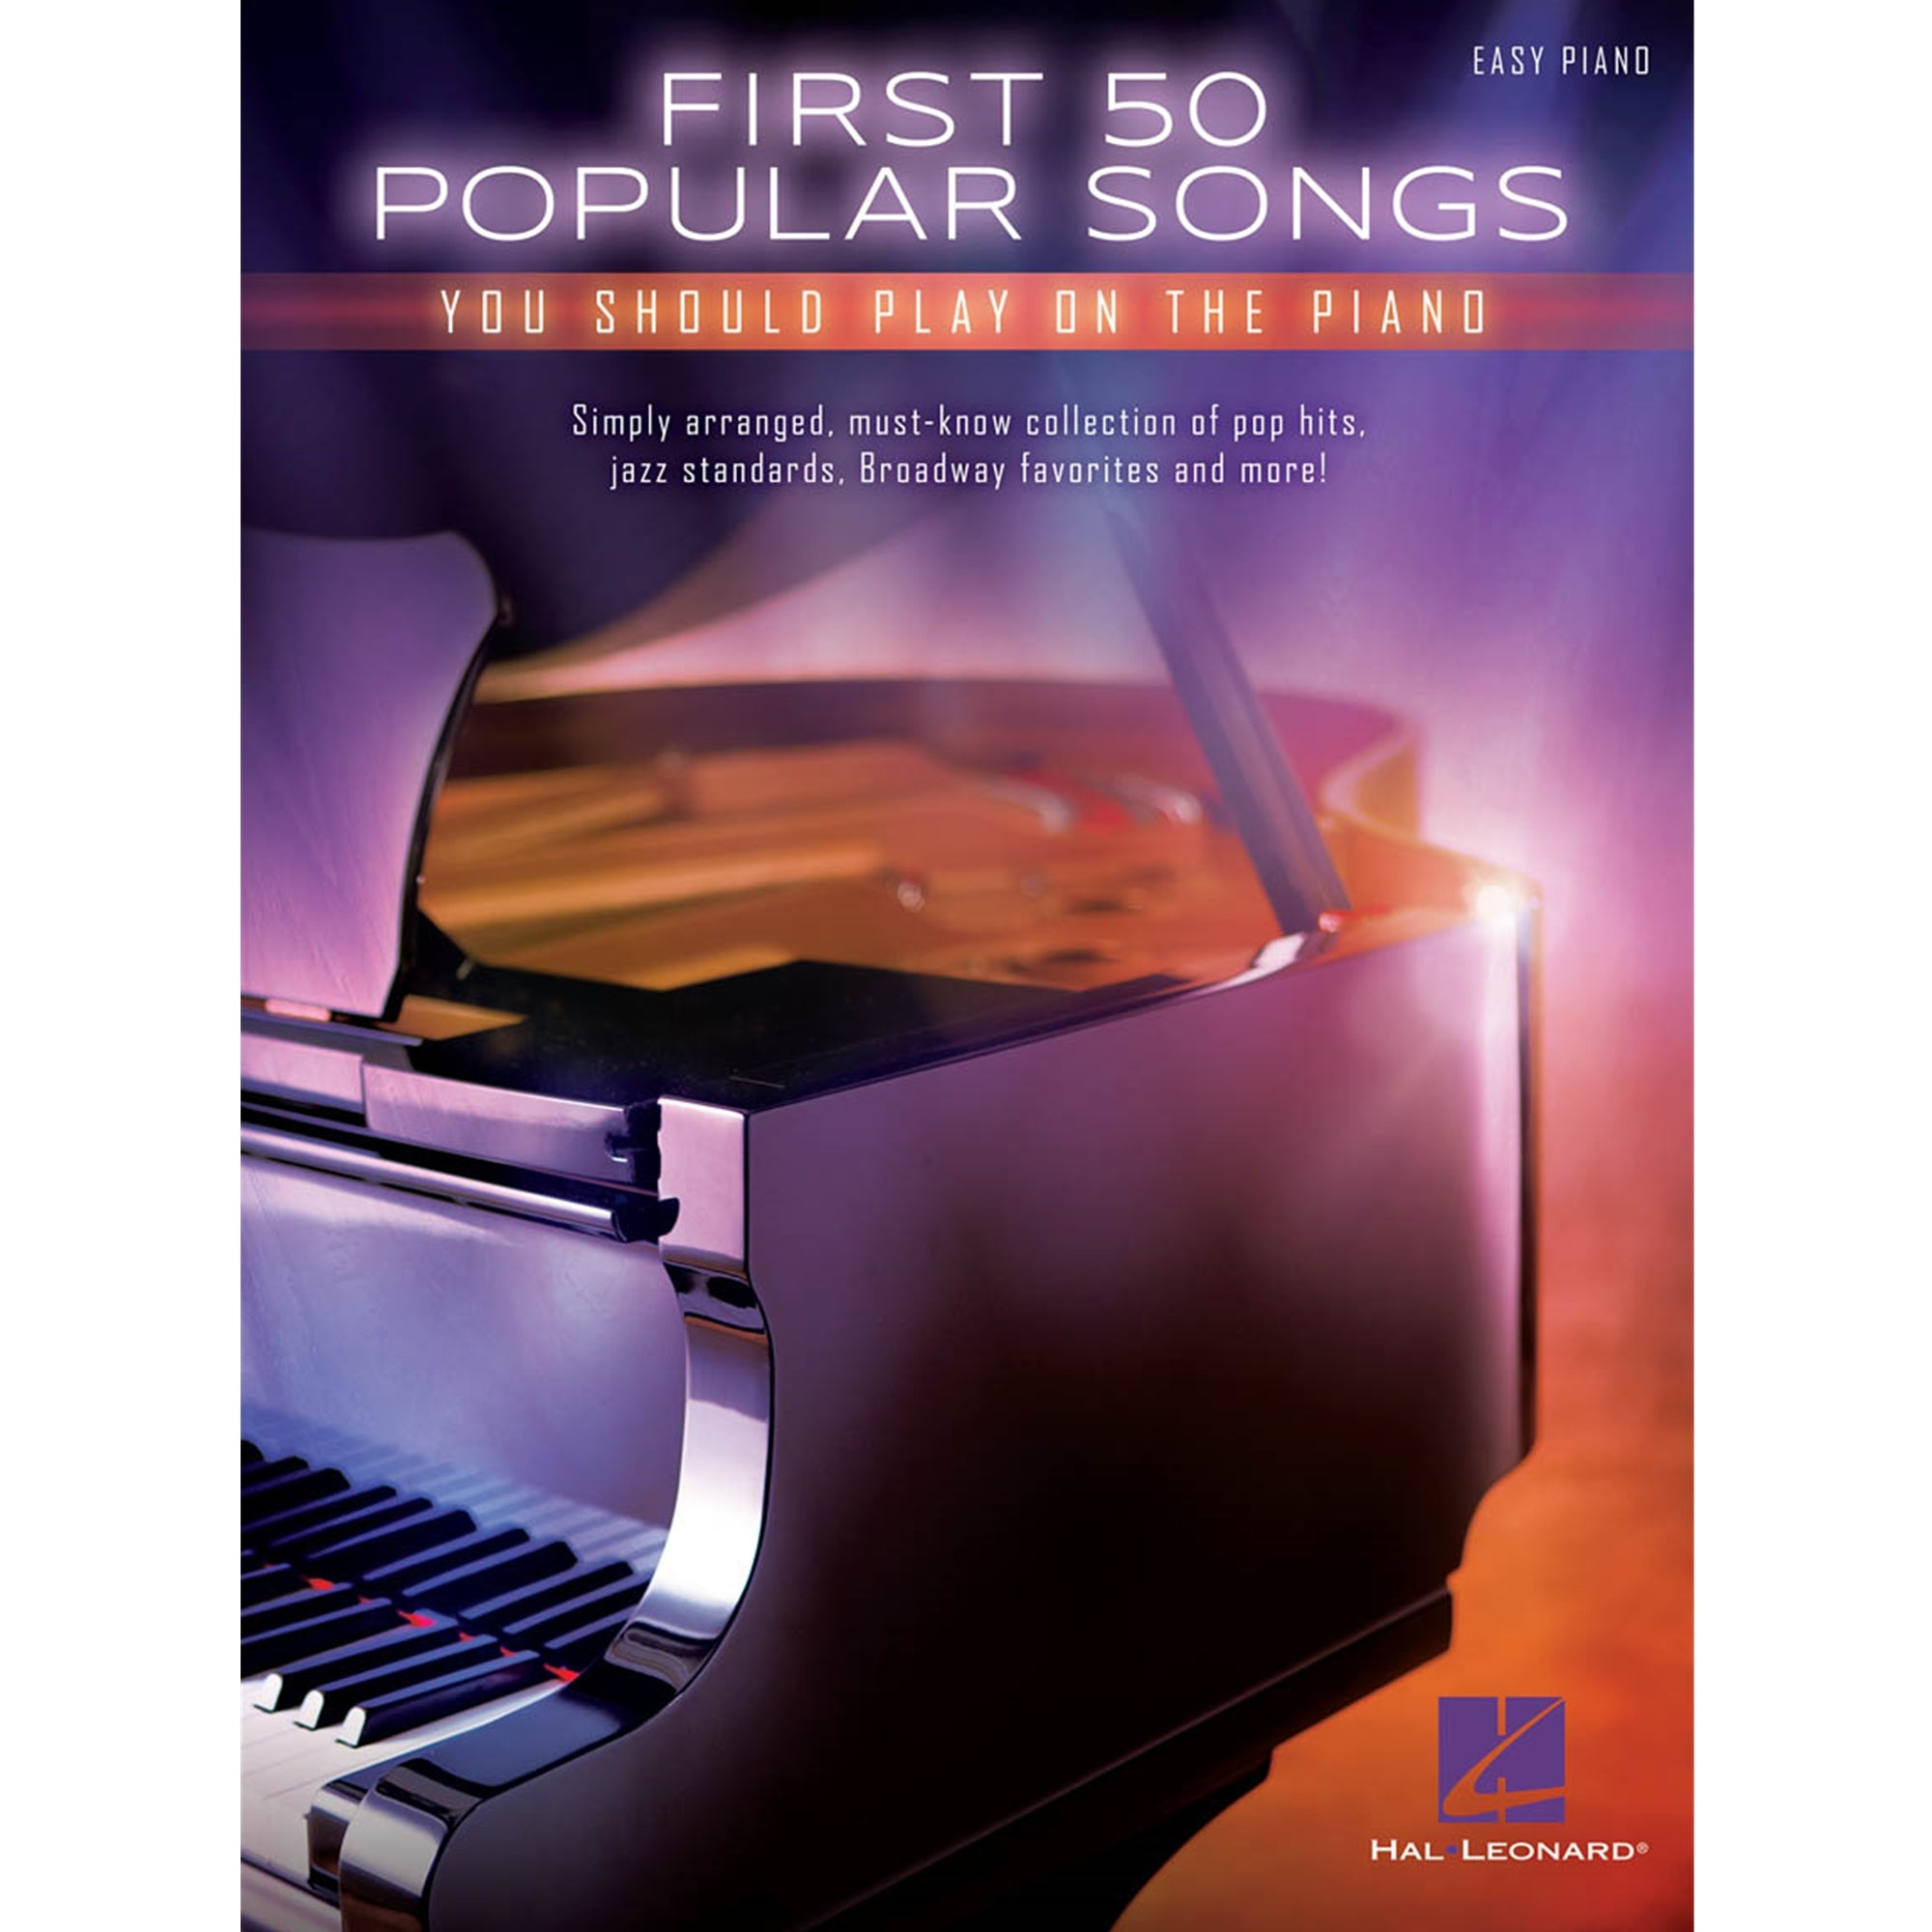 HAL LEONARD 131140 First 50 Popular Songs You Should Play on the Piano